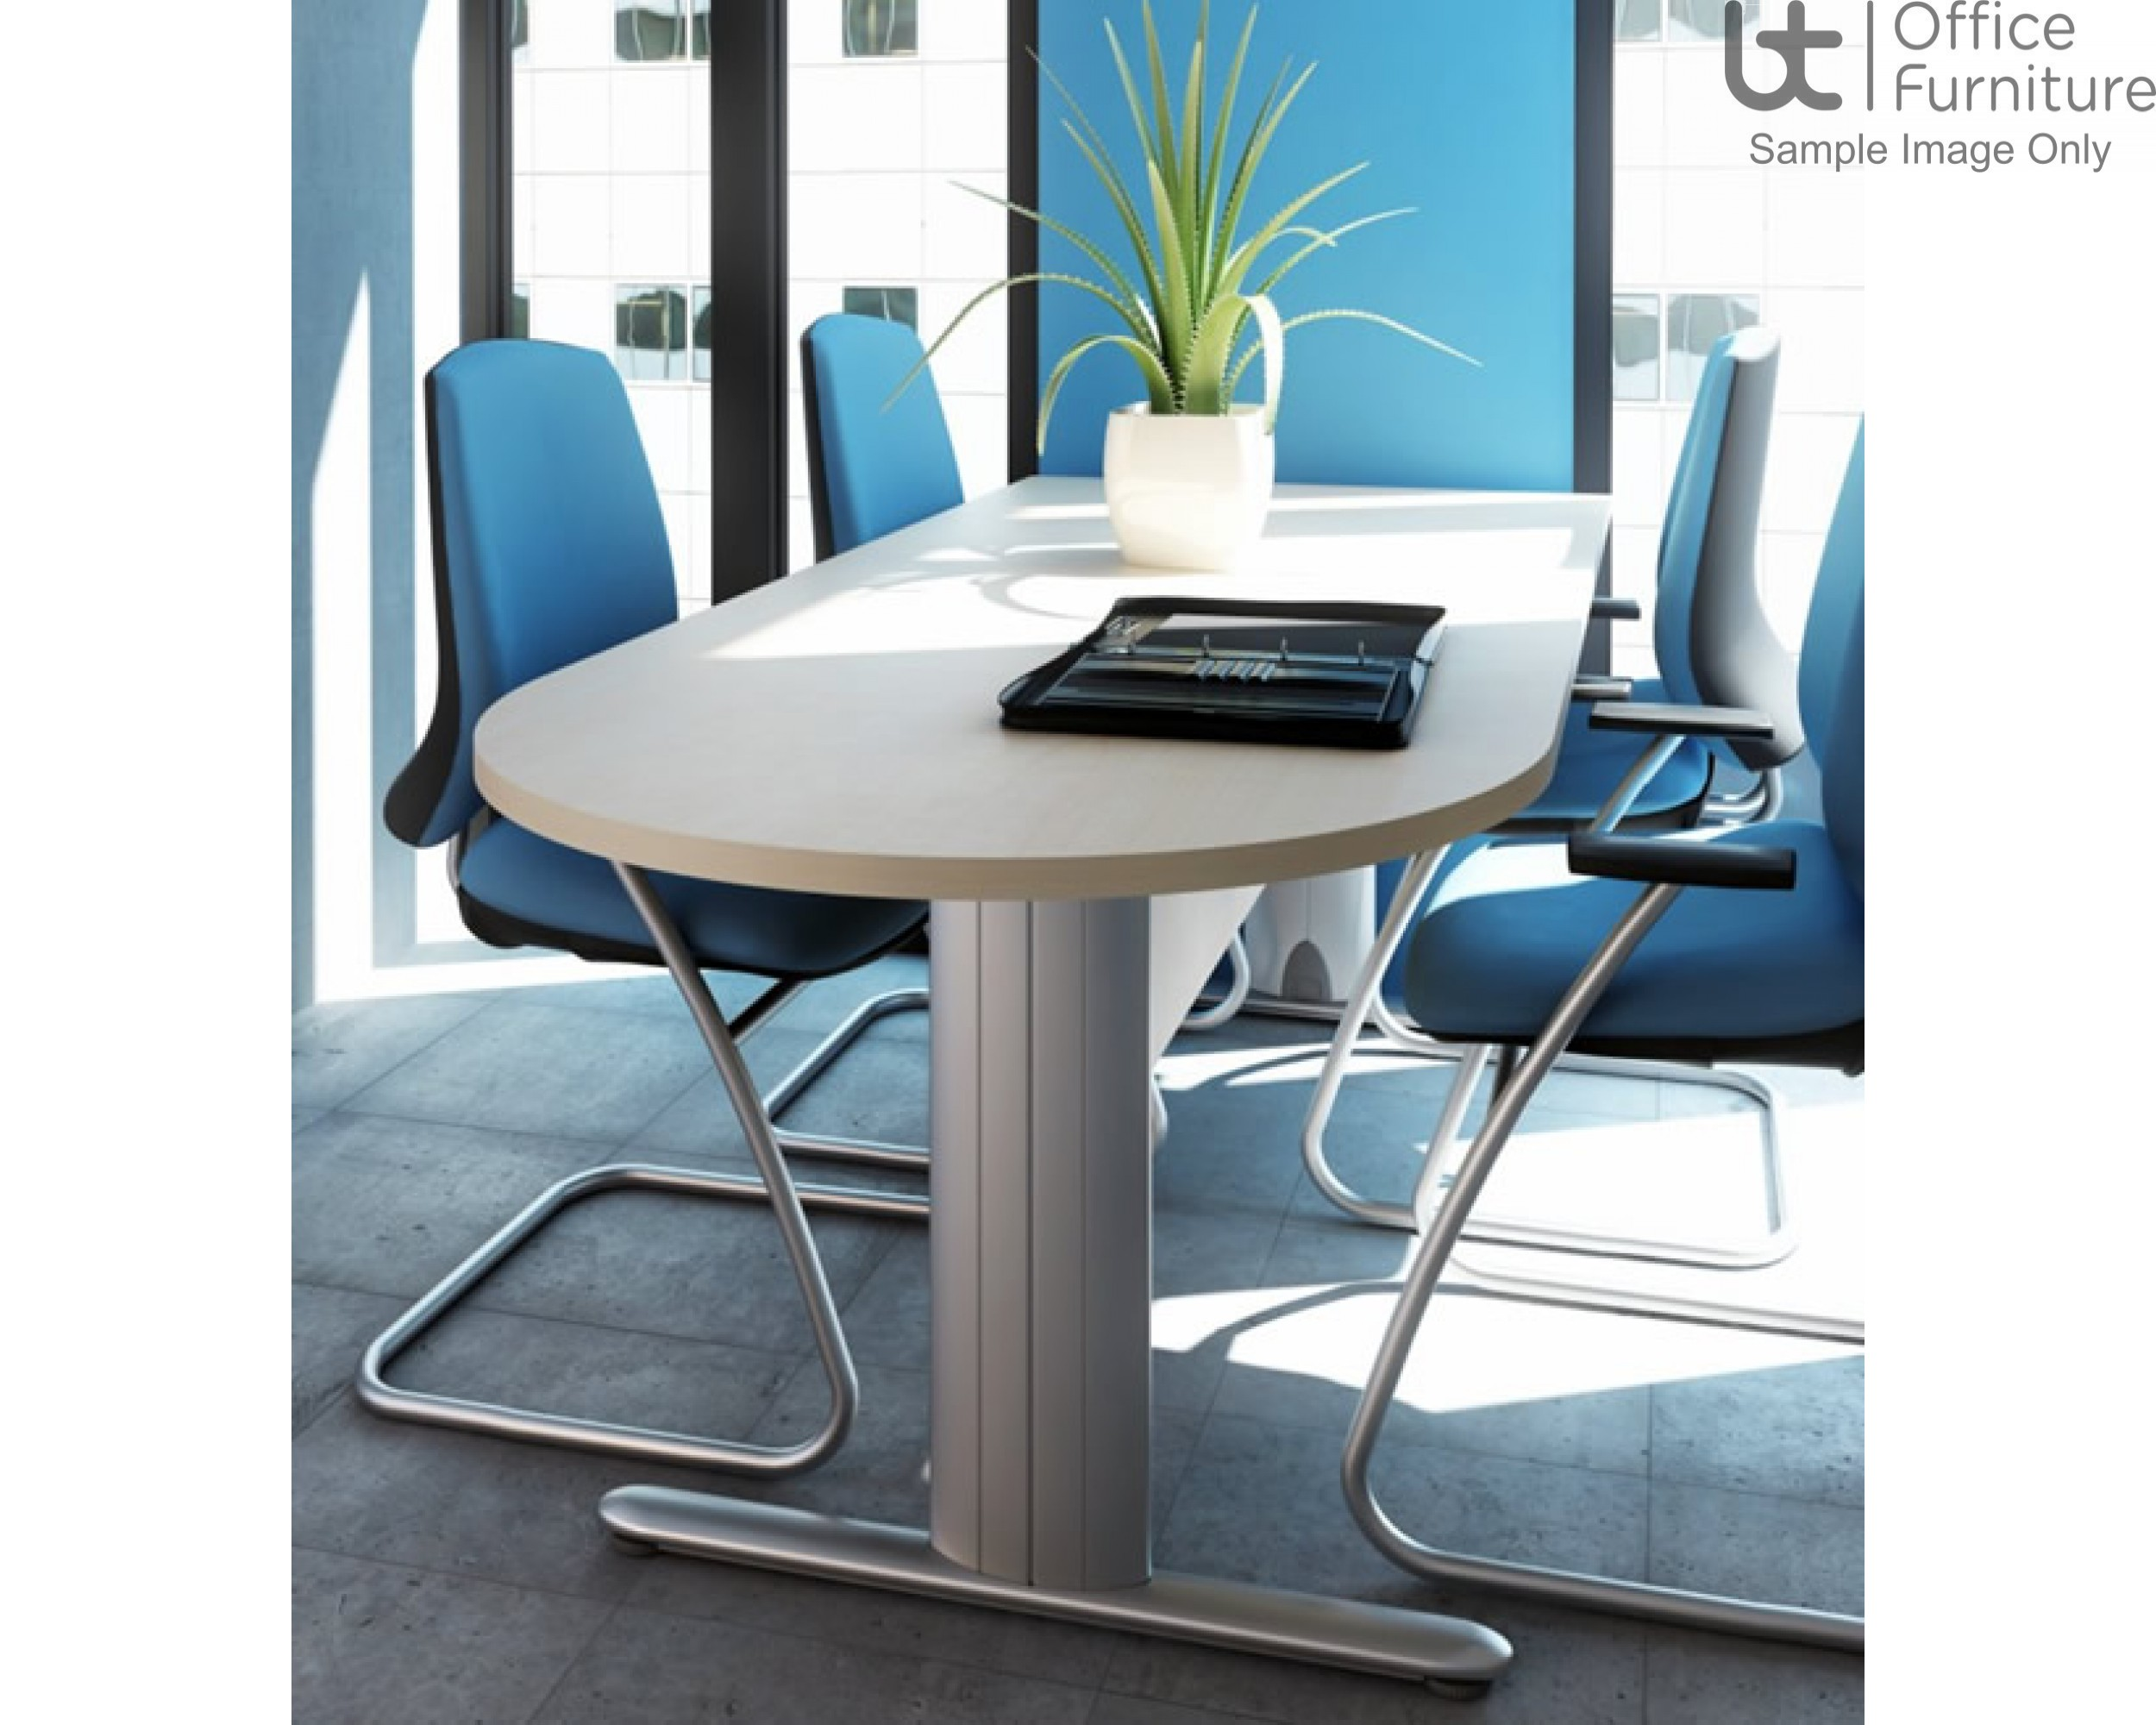 Elite Optima Plus Double D Ended 'I' Frame Conference Table Seats Up To 14 People